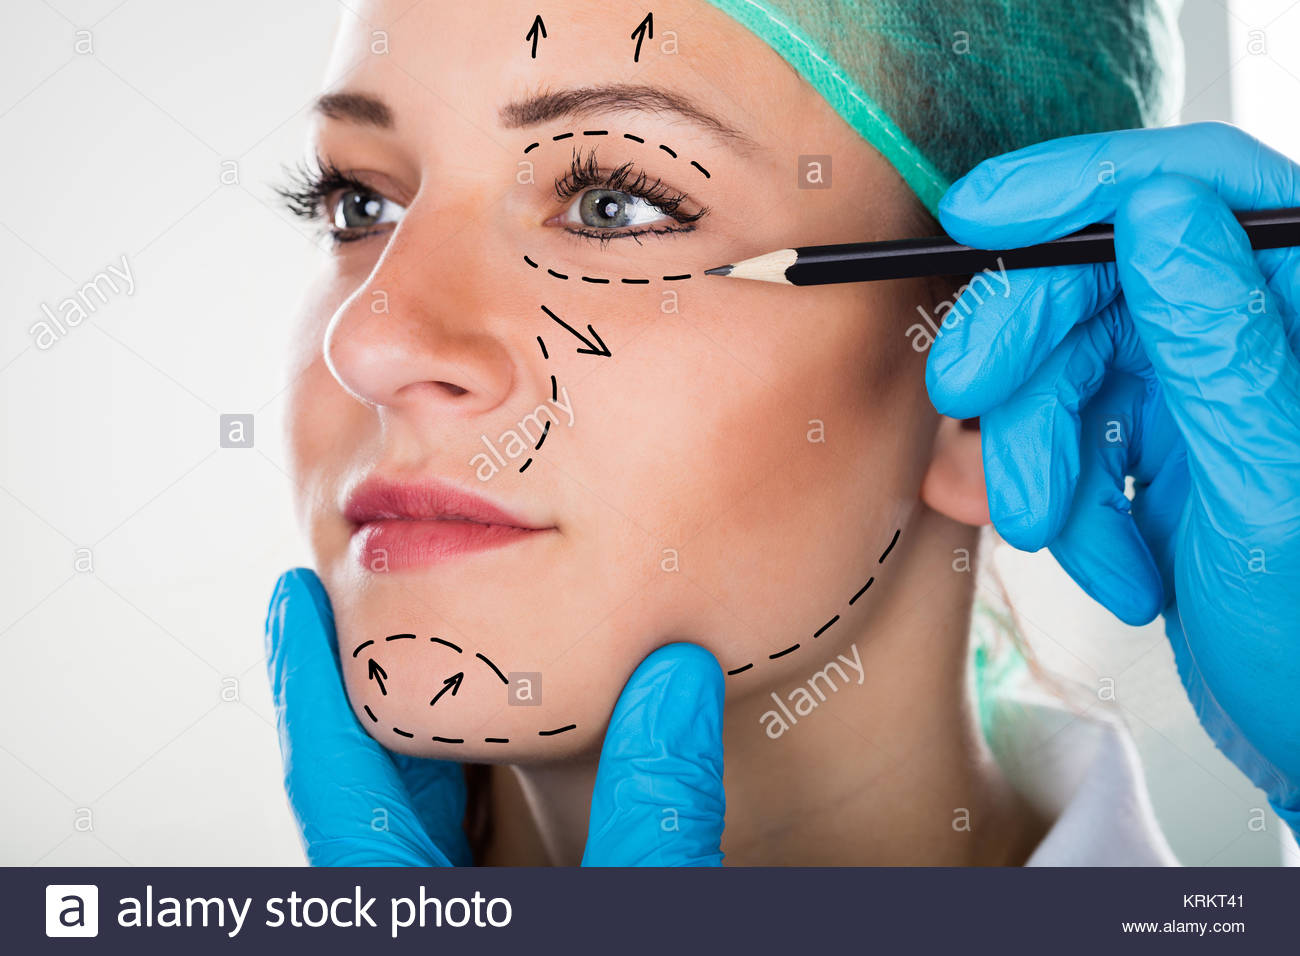 1300x956 Surgeon Drawing Lines On Woman's Face For Plastic Surgery Stock